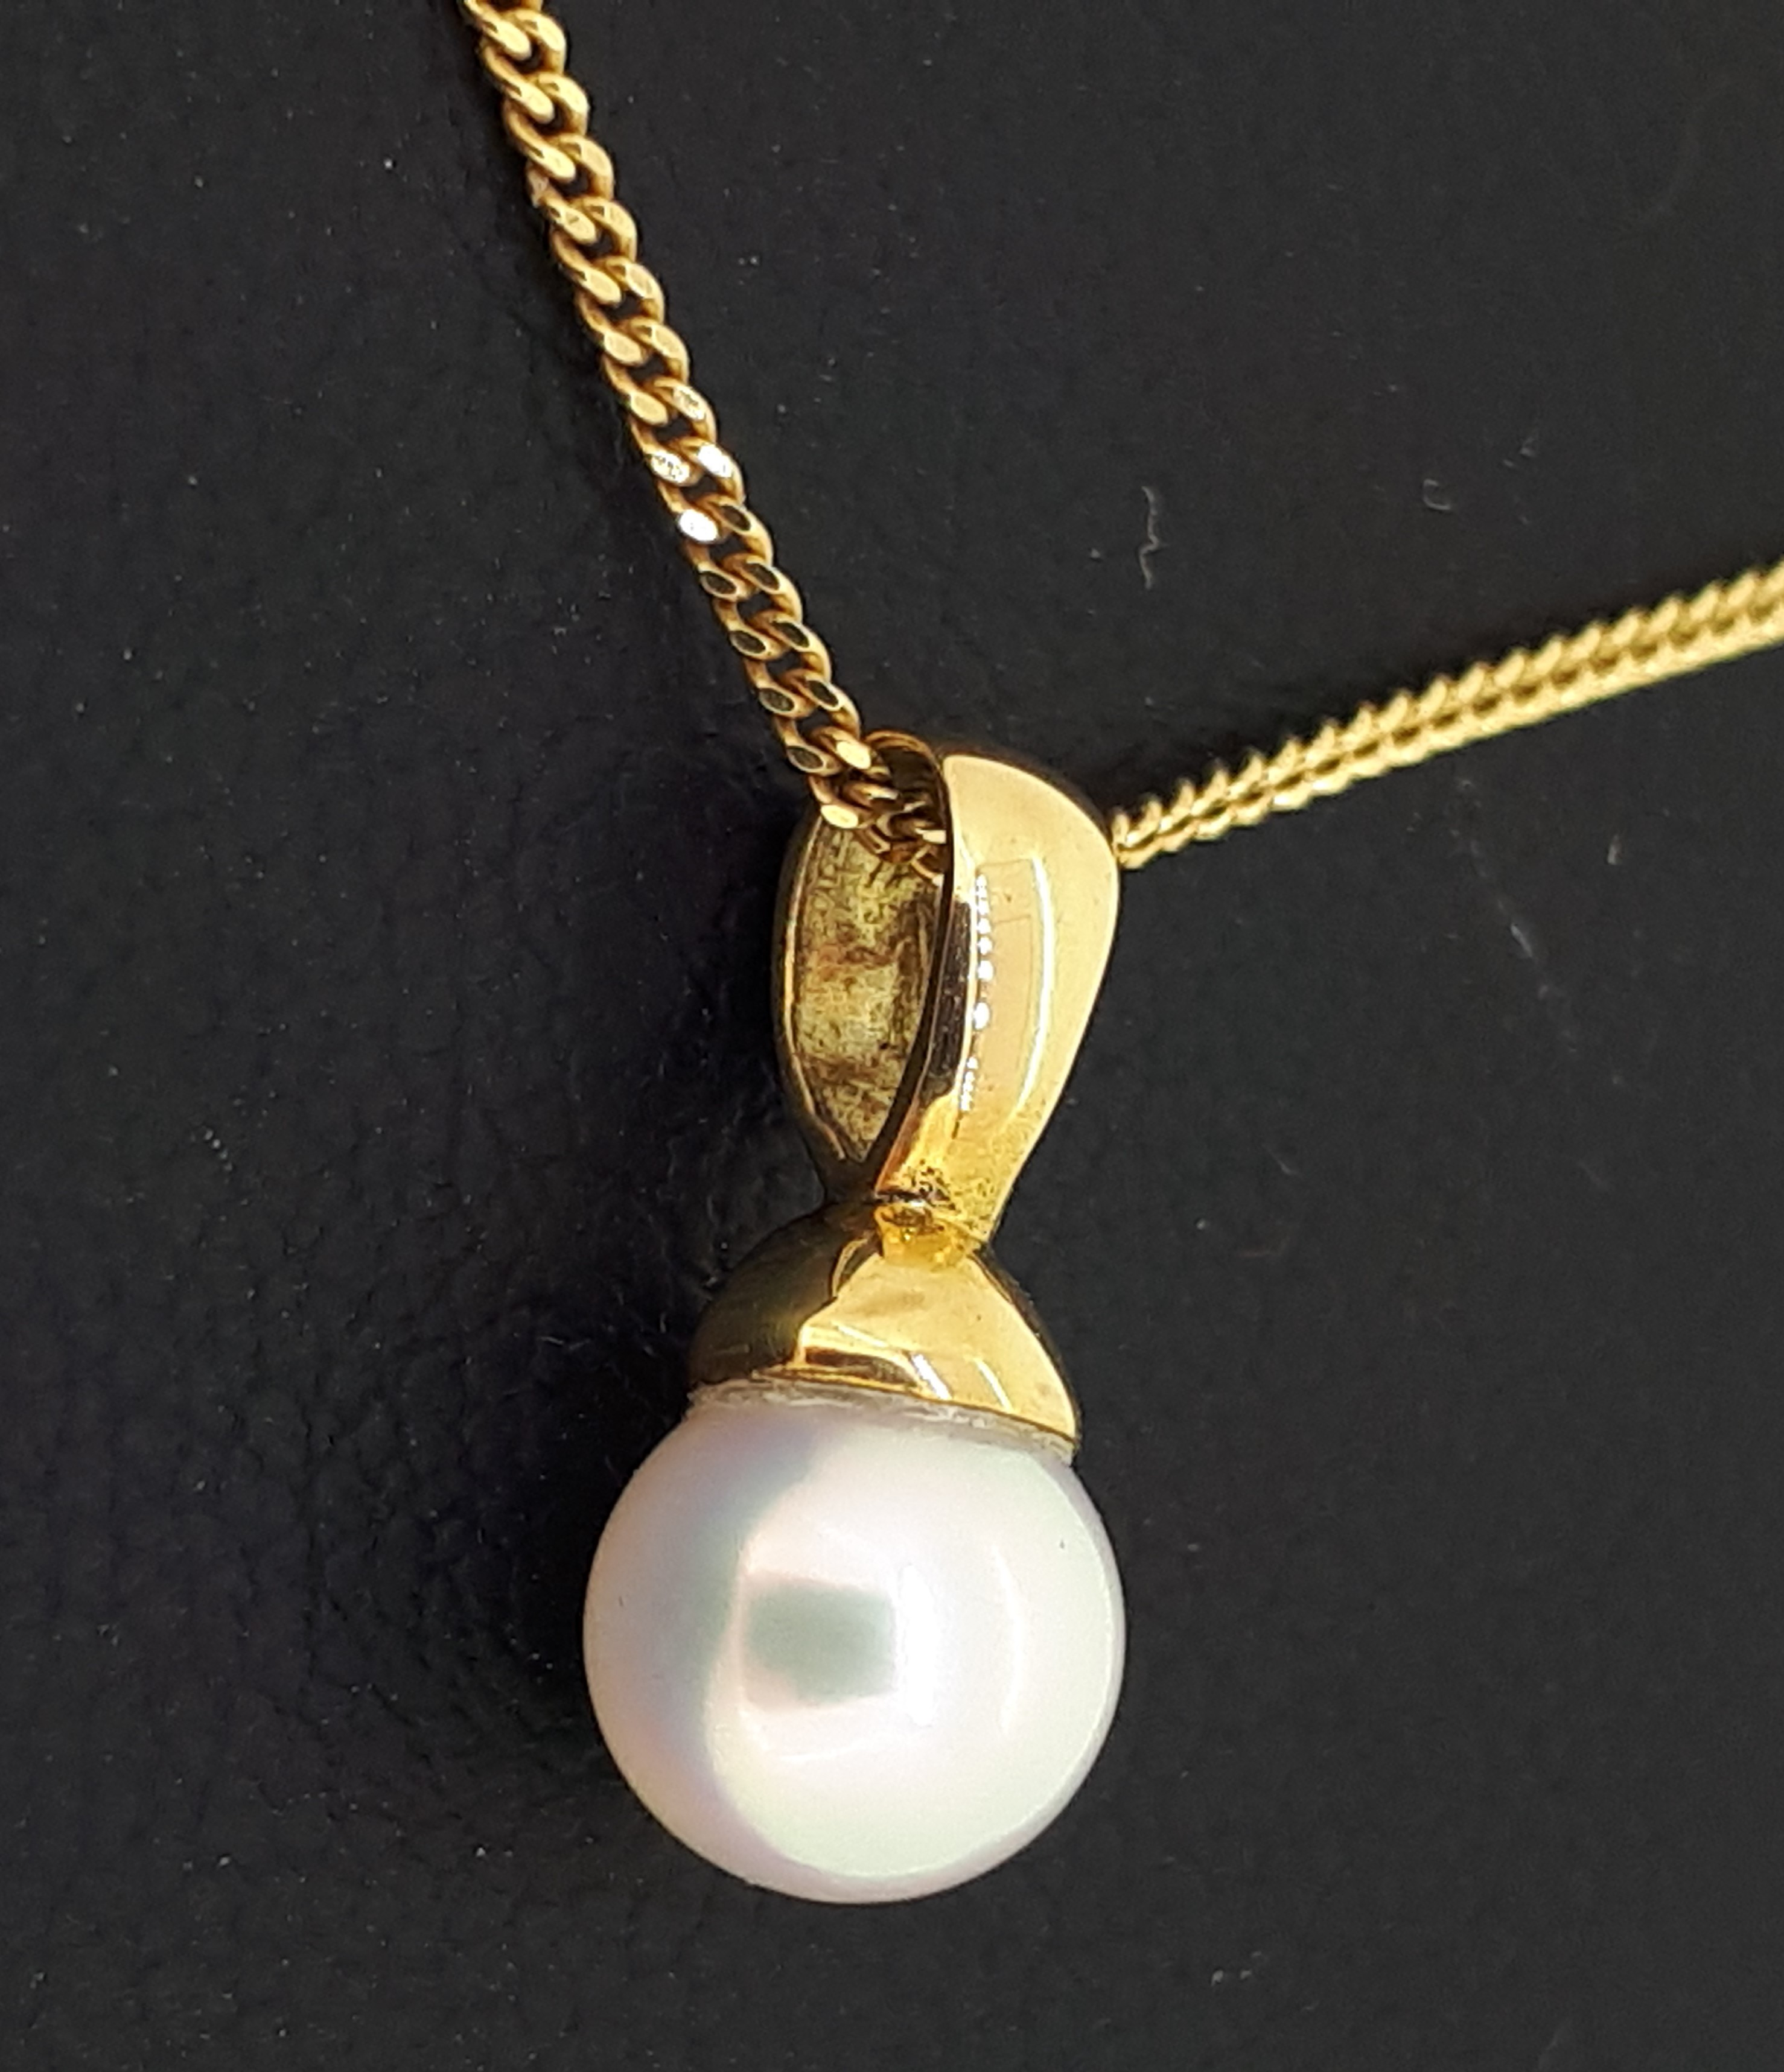 18ct (750) Yellow Gold 5.5-6mm Pearl Pendant on 18ct Yellow Gold Curb Chain